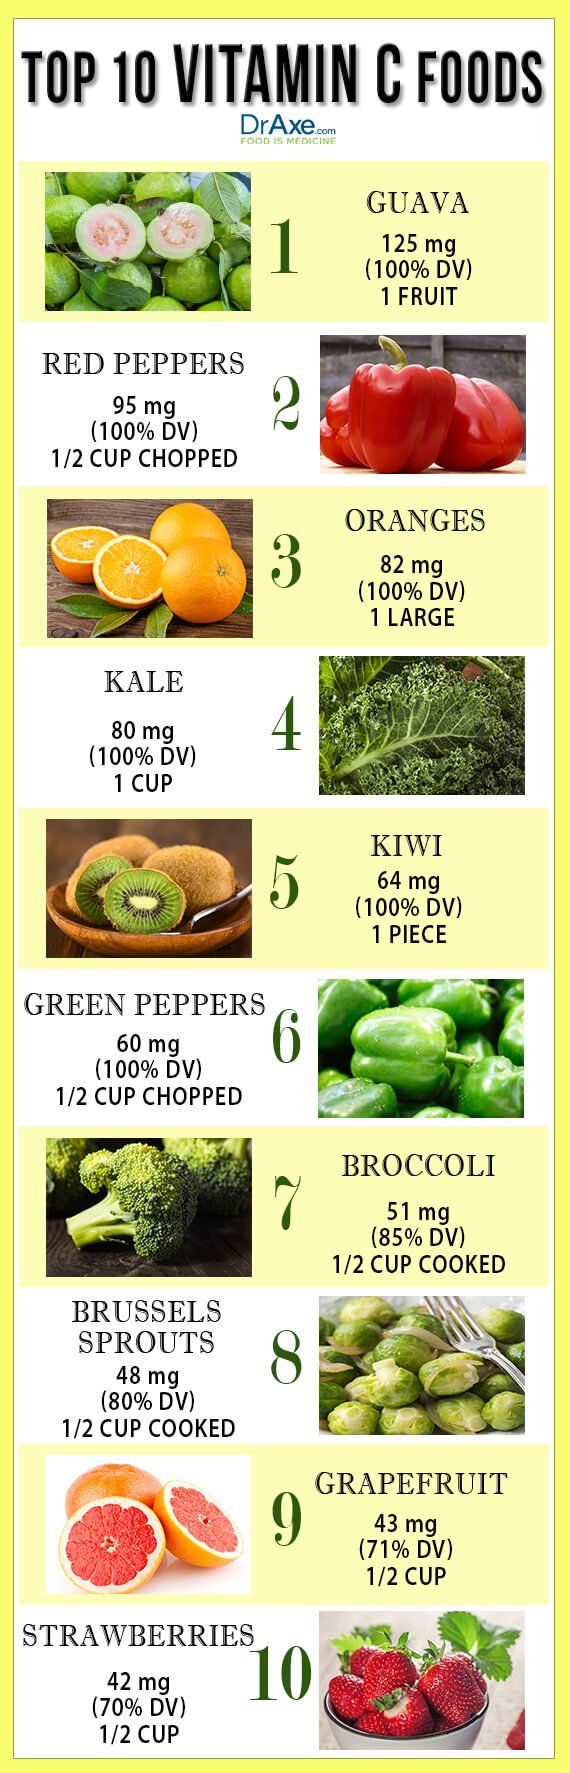 Top 20 Foods That Can Boost Immunity Fight Disease Lose Weight